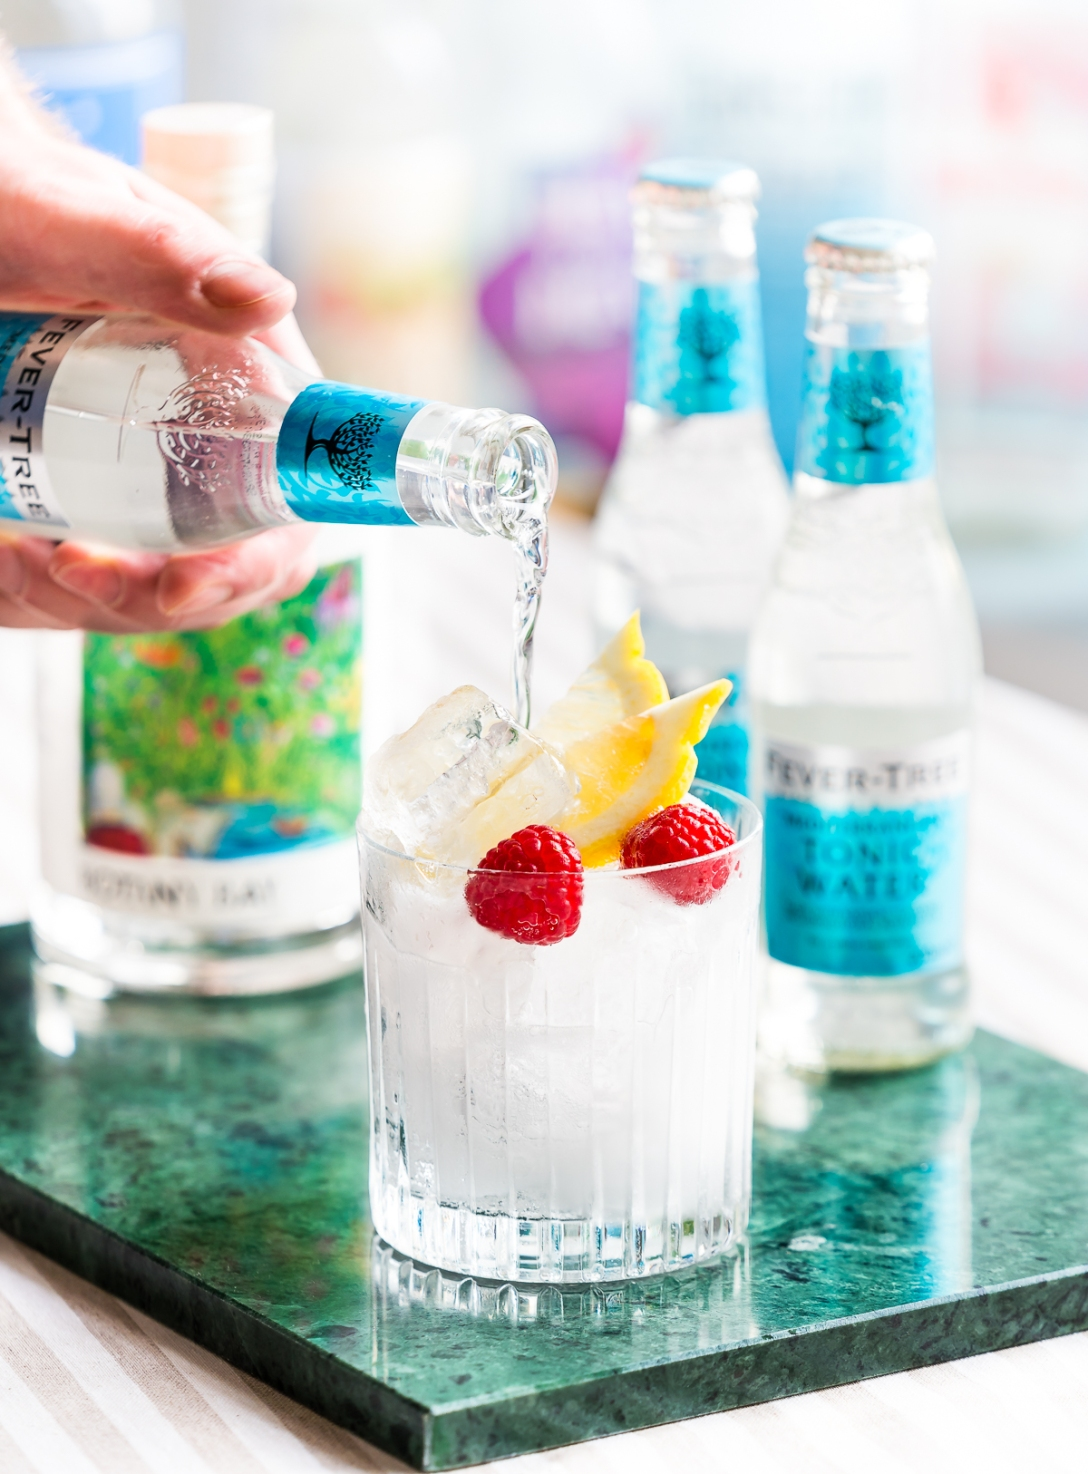 Hernö x Four Pillars Botany Bay Gin and Fever-Tree Mediterranean Tonic. Photo by Michael Sperling.